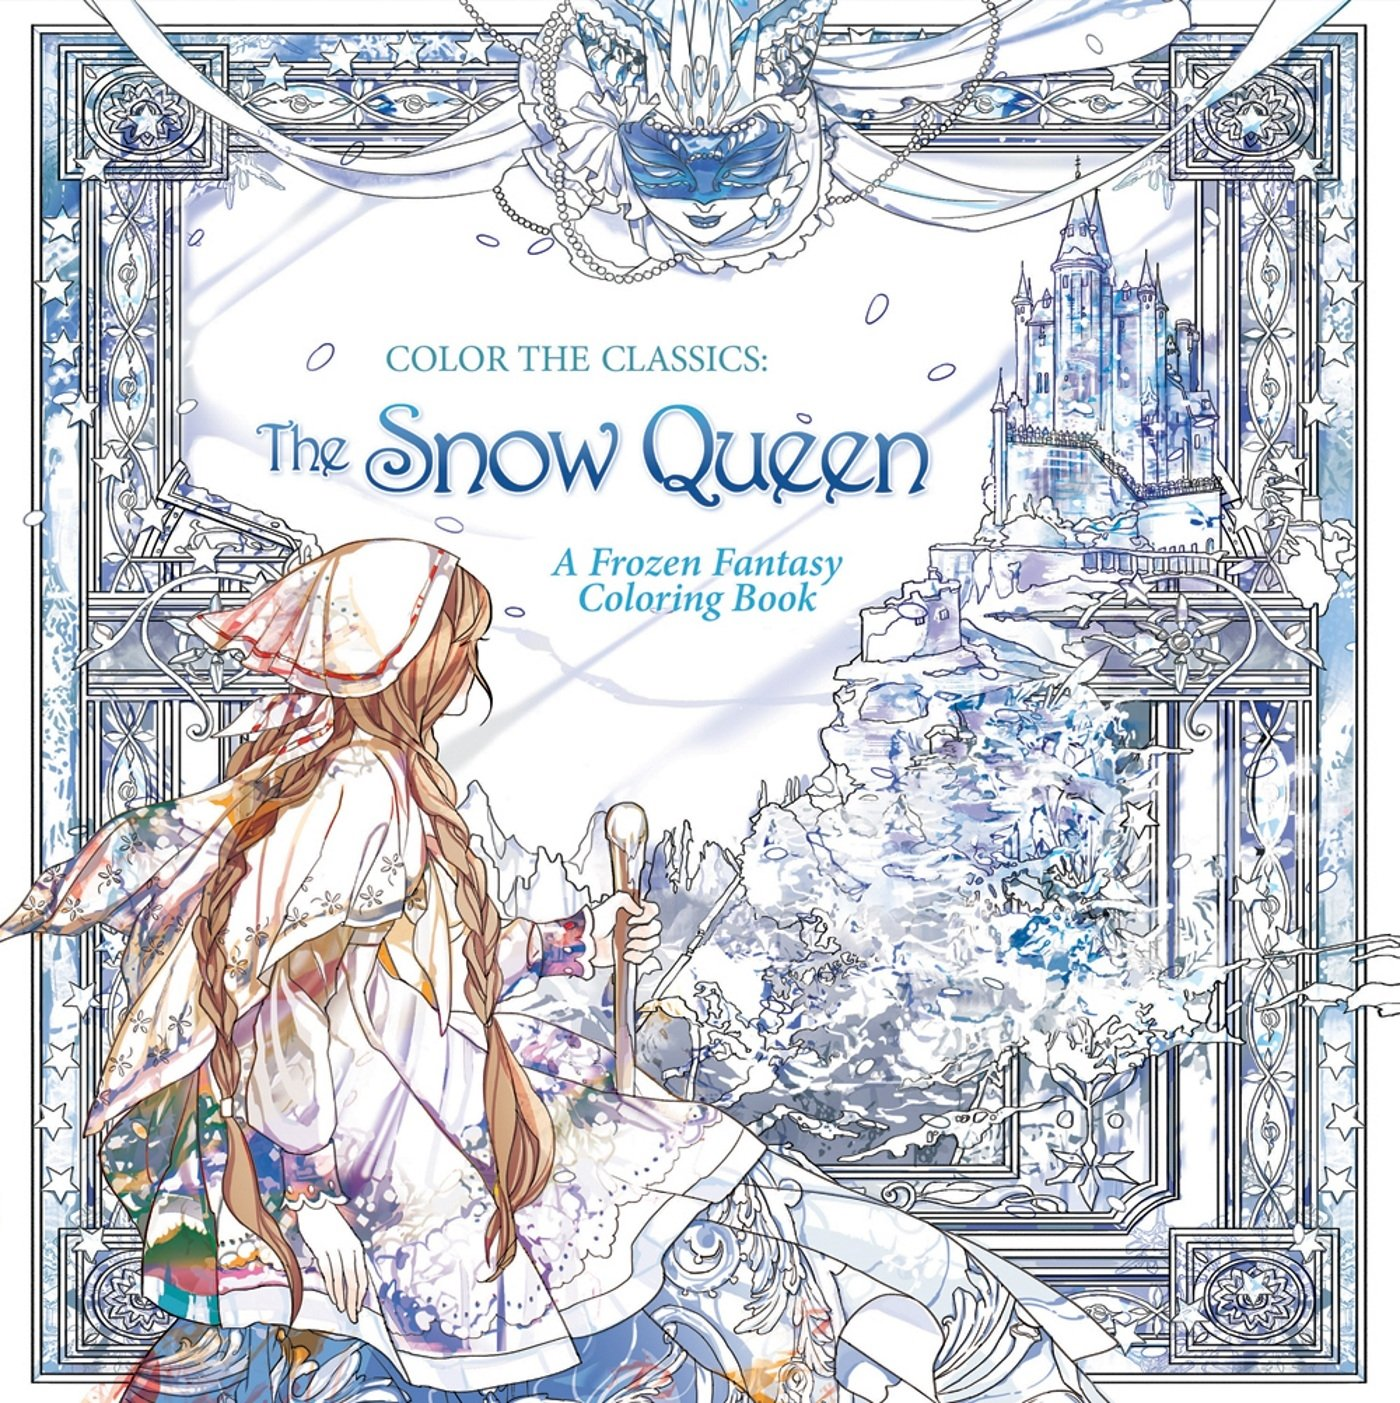 color the classics the snow queen a frozen fantasy coloring book jae eun lee 9781626923997 amazoncom books - Fantasy Coloring Books For Adults